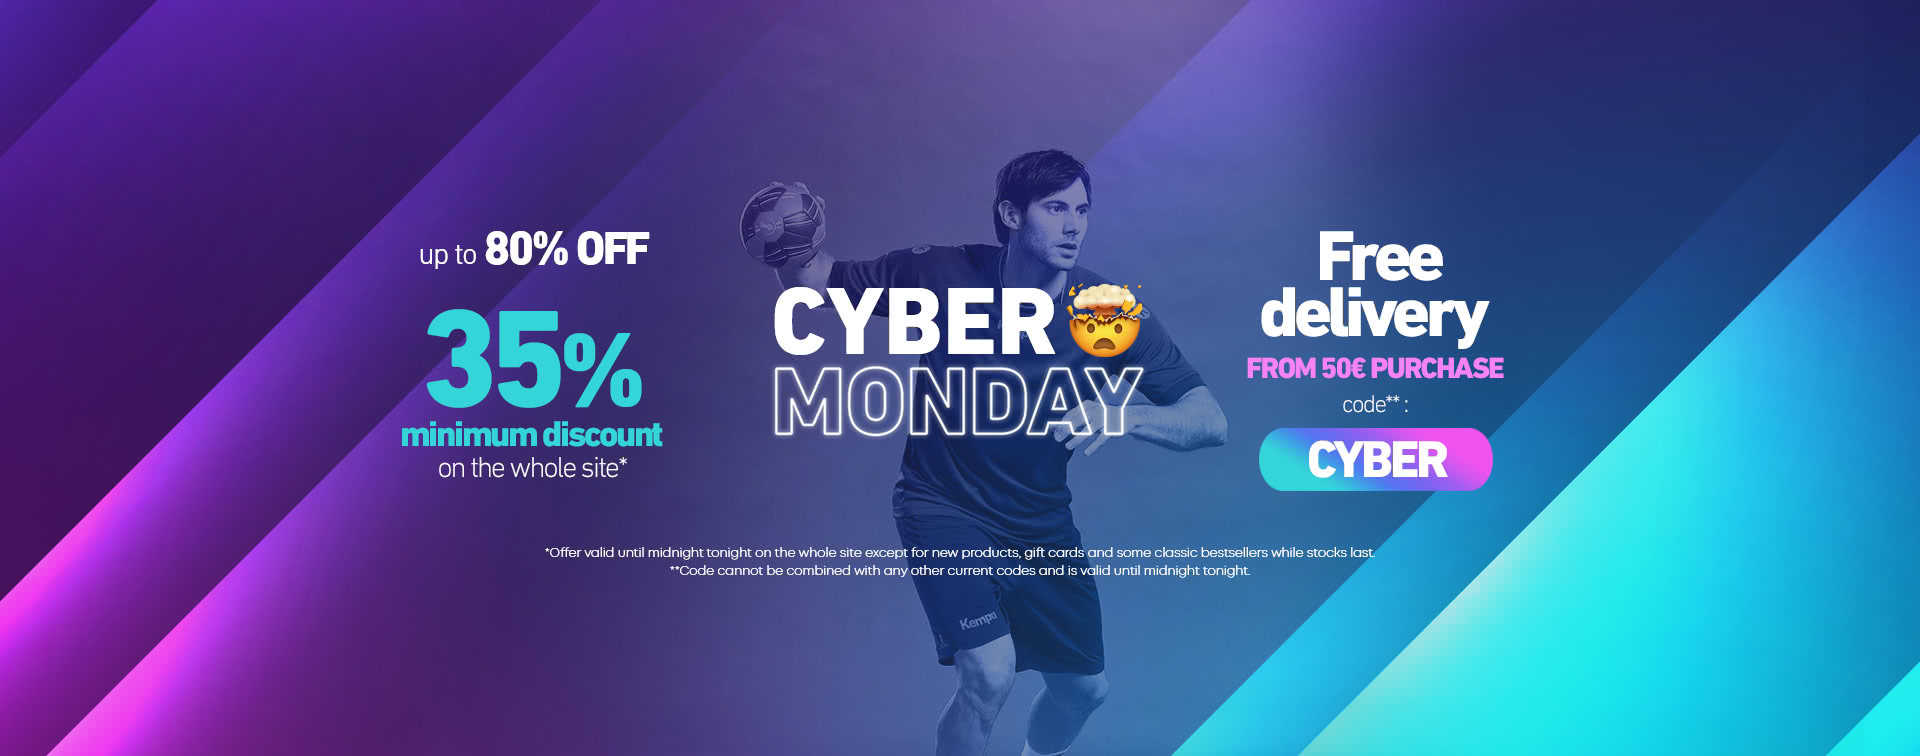 Cyber Monday save up to 80% off